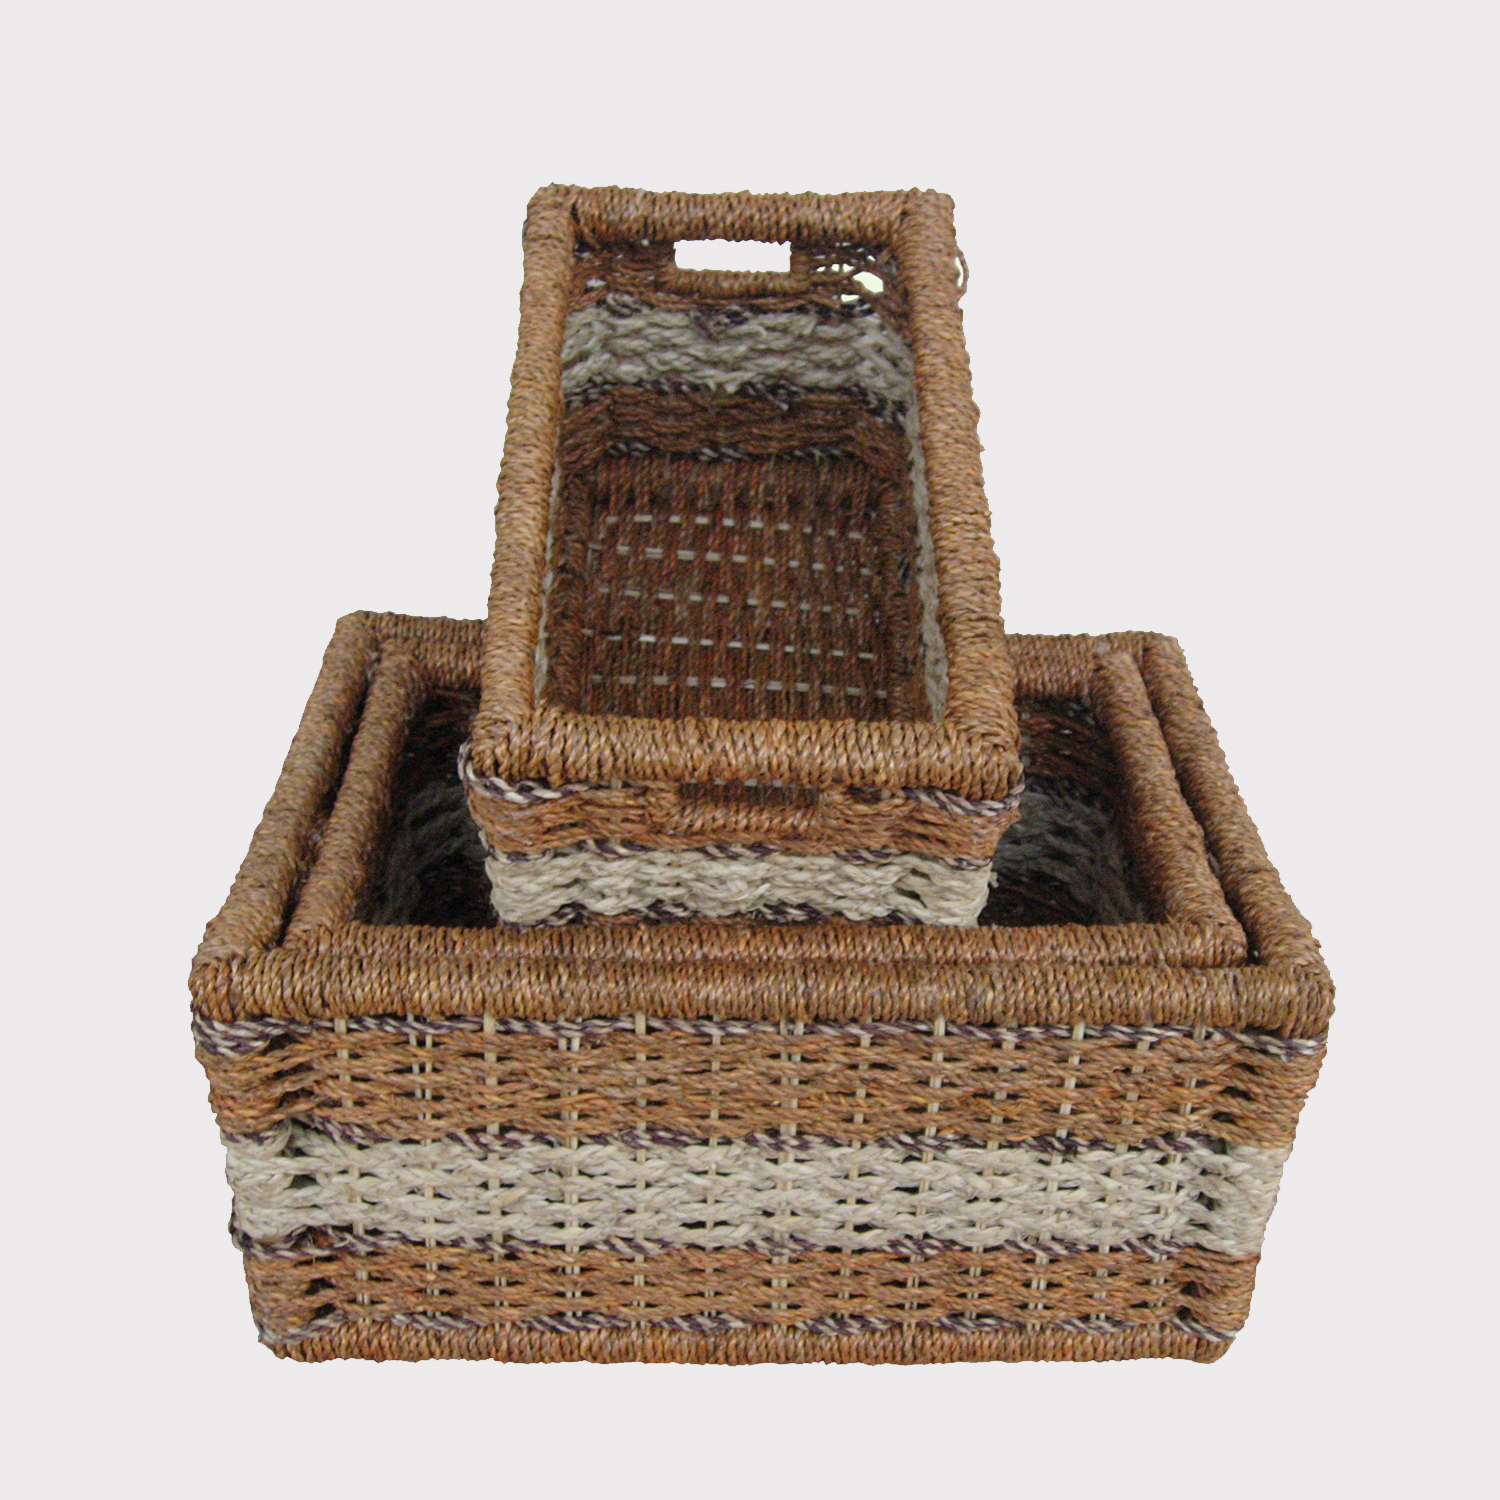 Fern Basket 230114-3